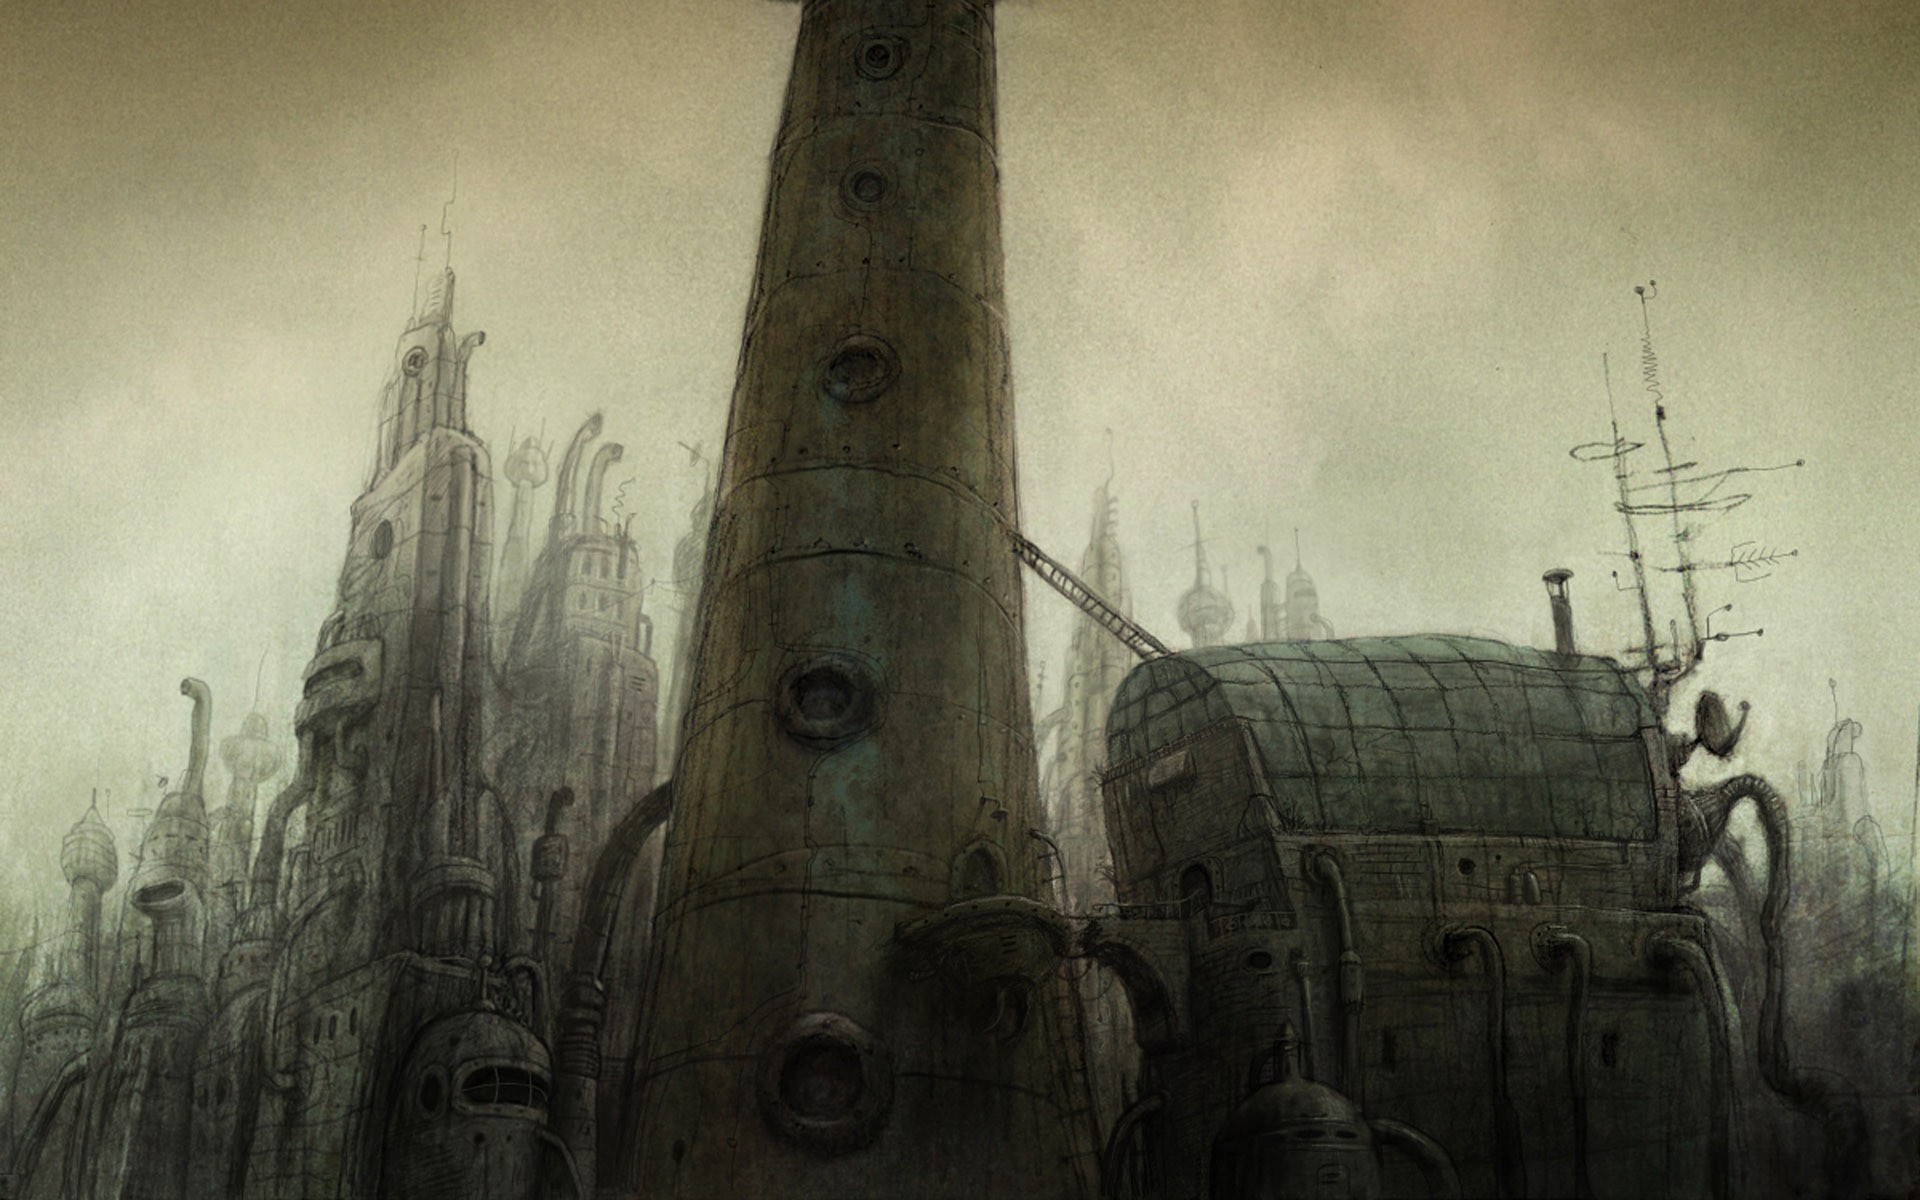 machinarium tower башня